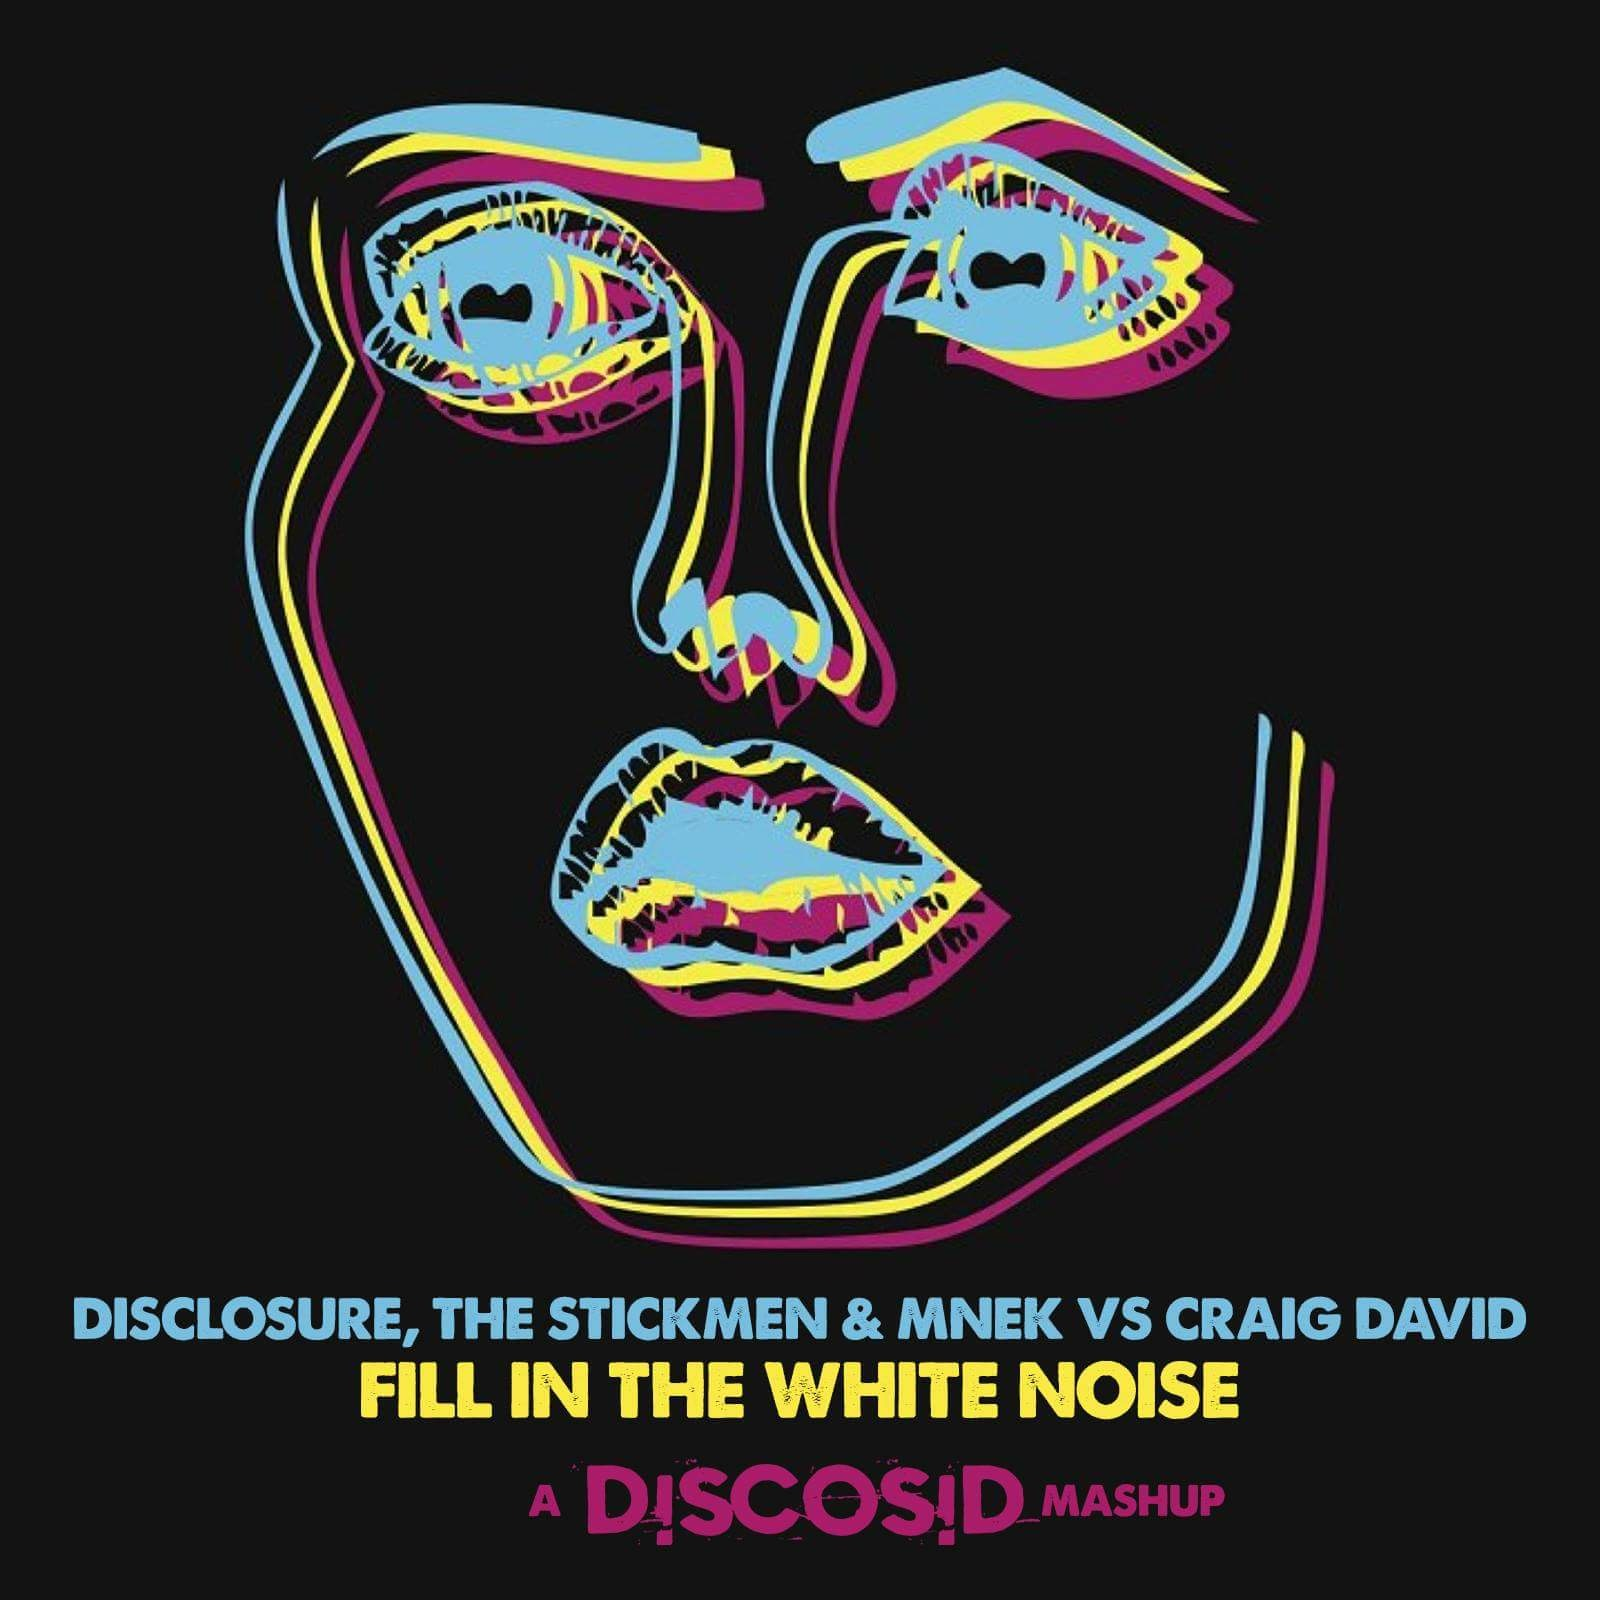 Disclosure, MNEK & The Stickmen Vs Craig David - Fill In The White Noise (Discosid Mashup)